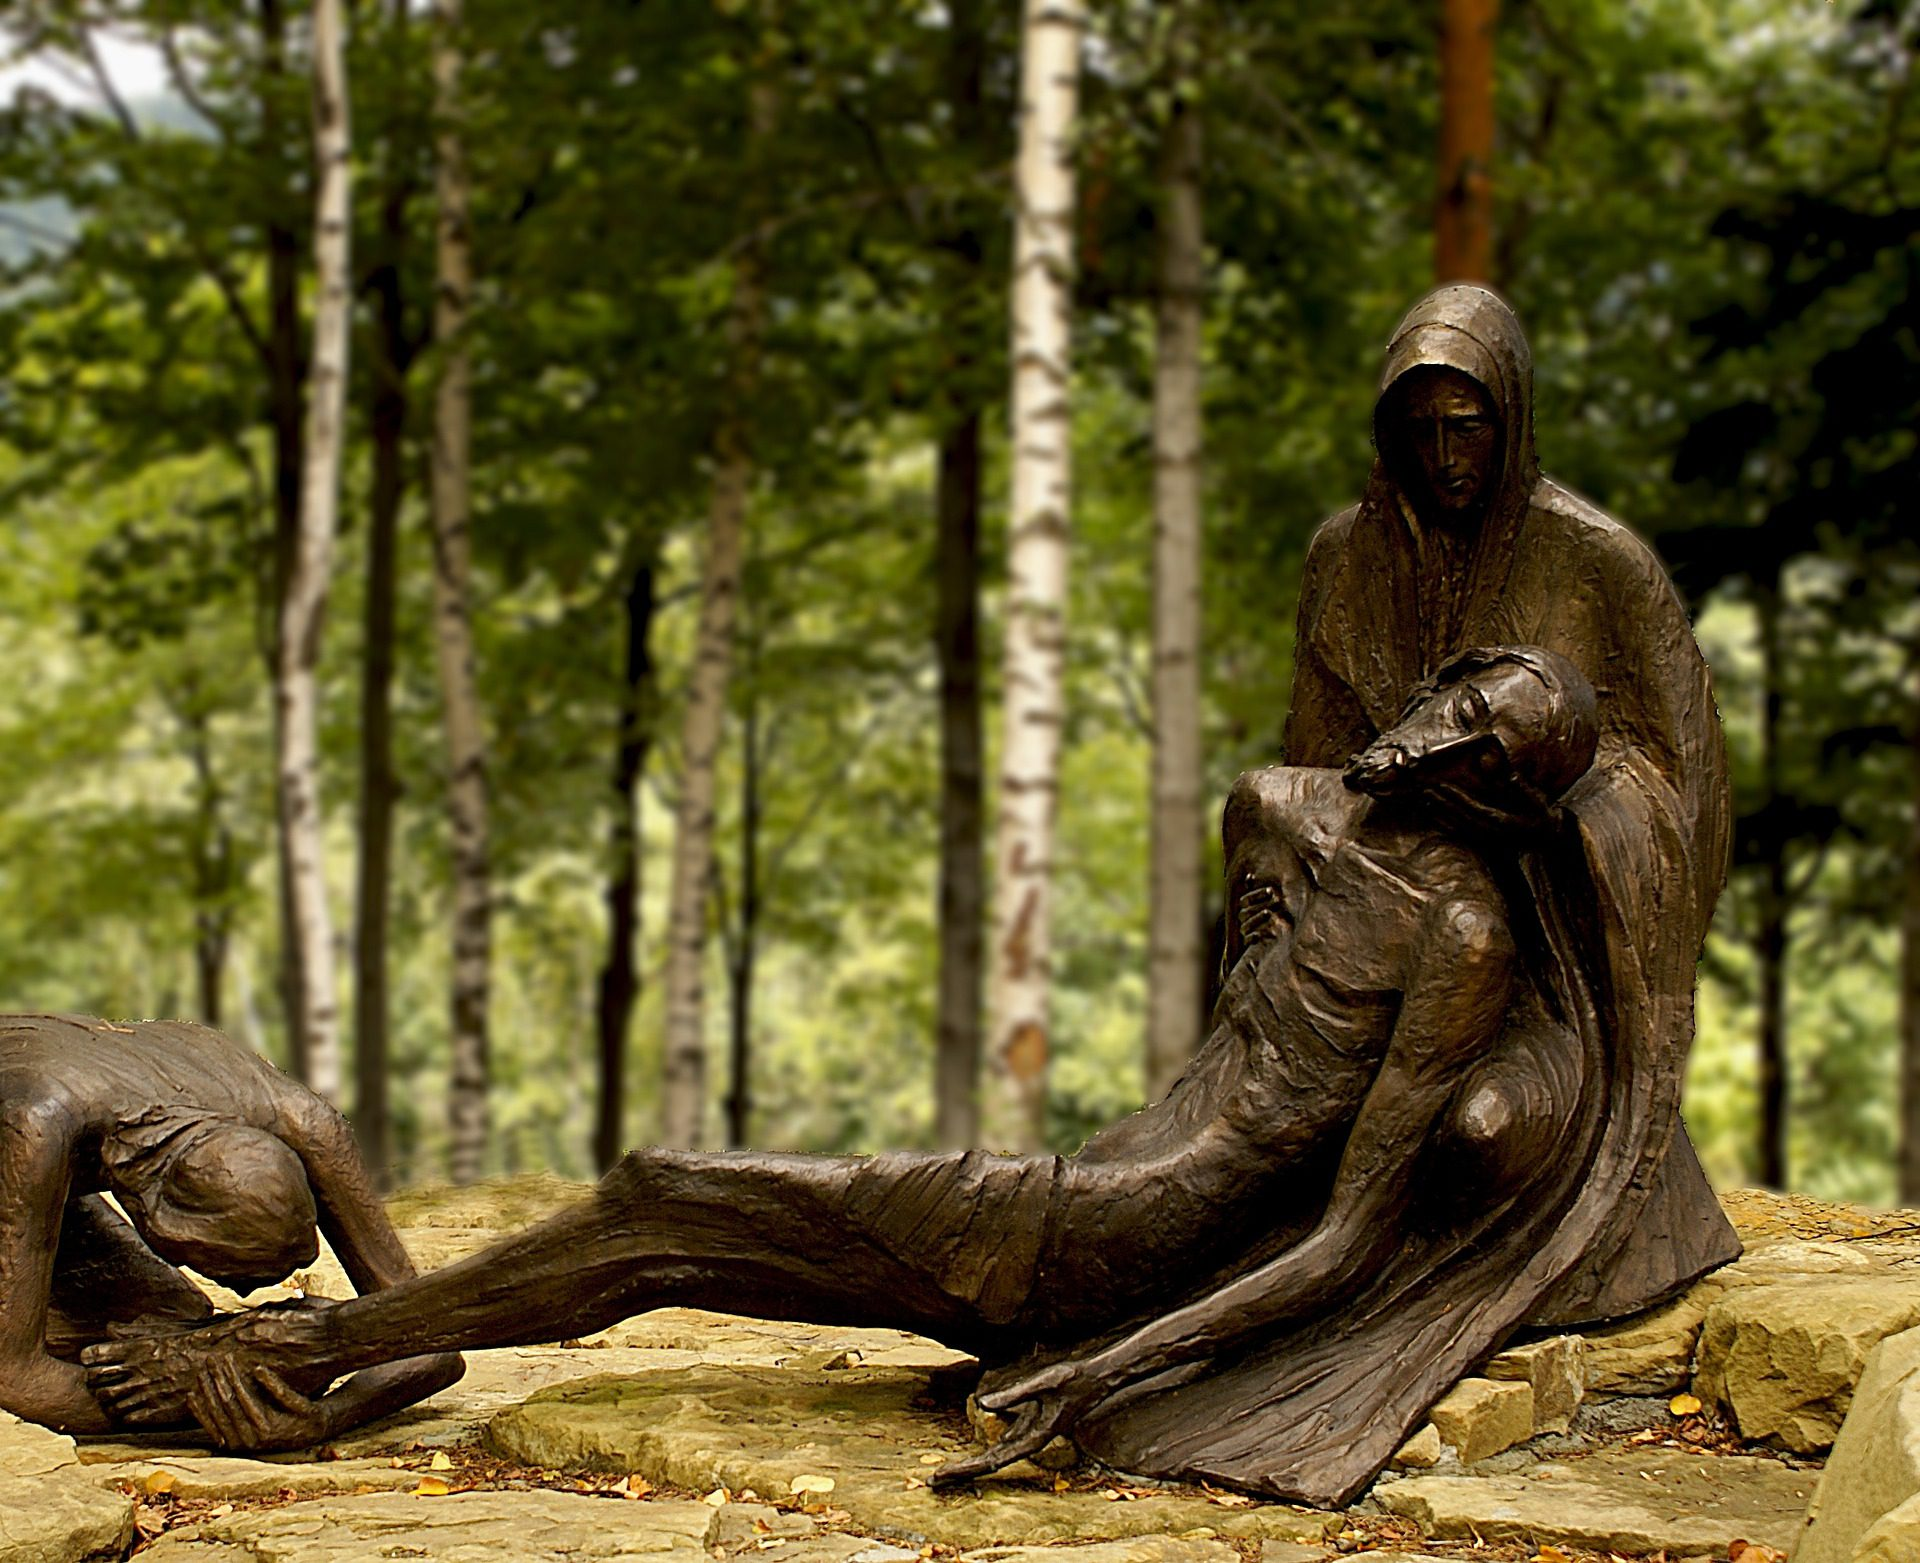 Praying the Stations of the Cross: A Devotion of Suffering During a Year of Lent